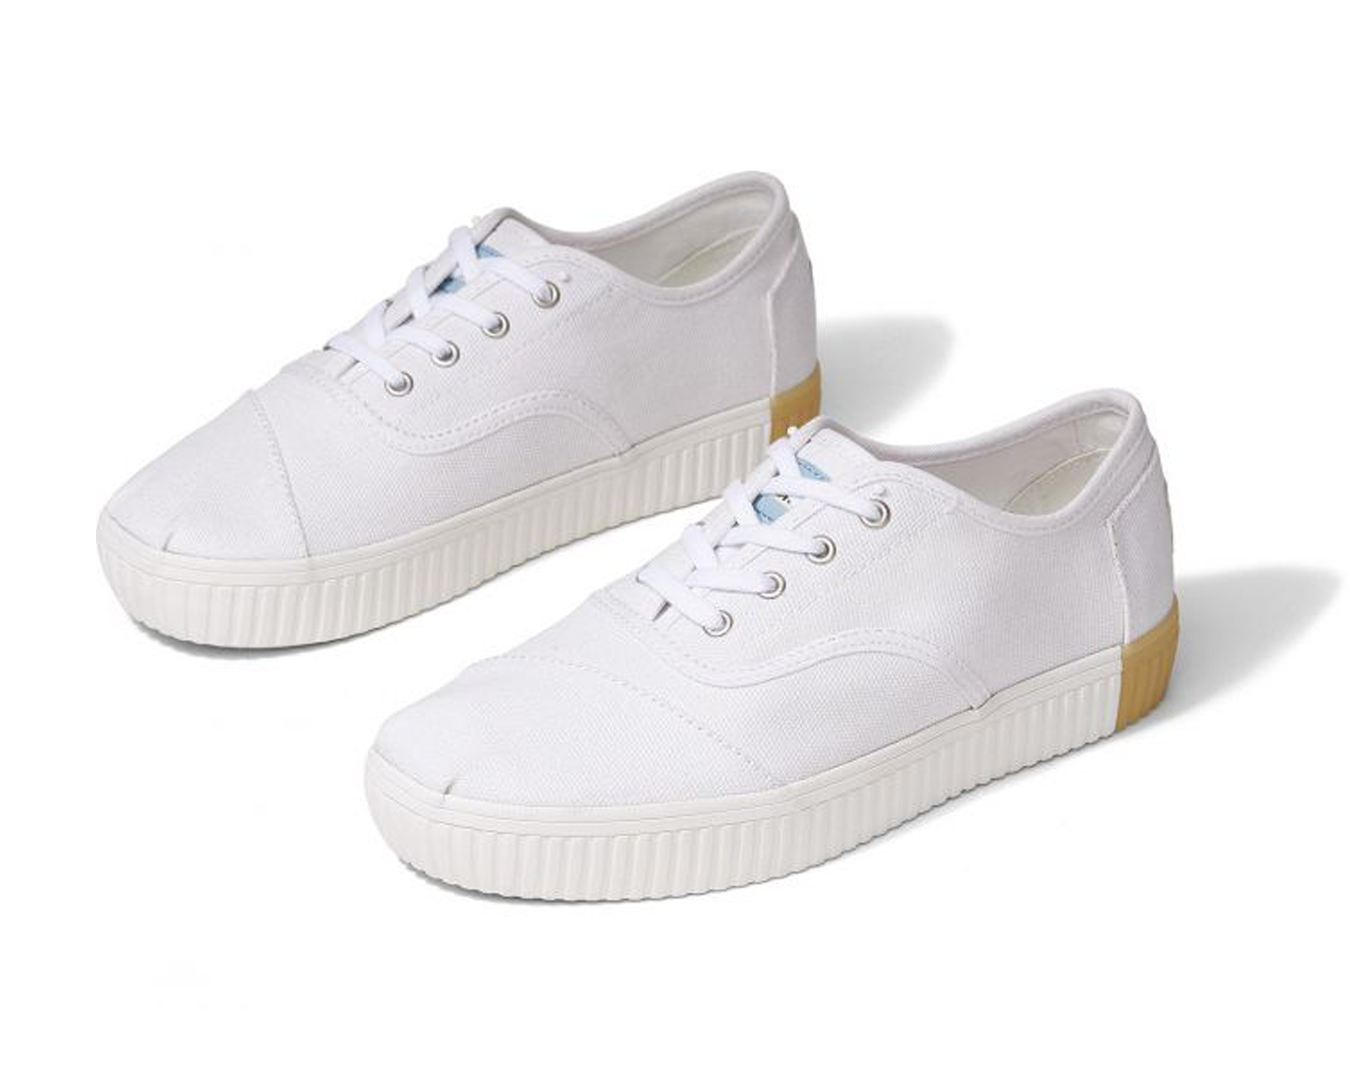 White canvas sneakers from toms, with a rubber heel.